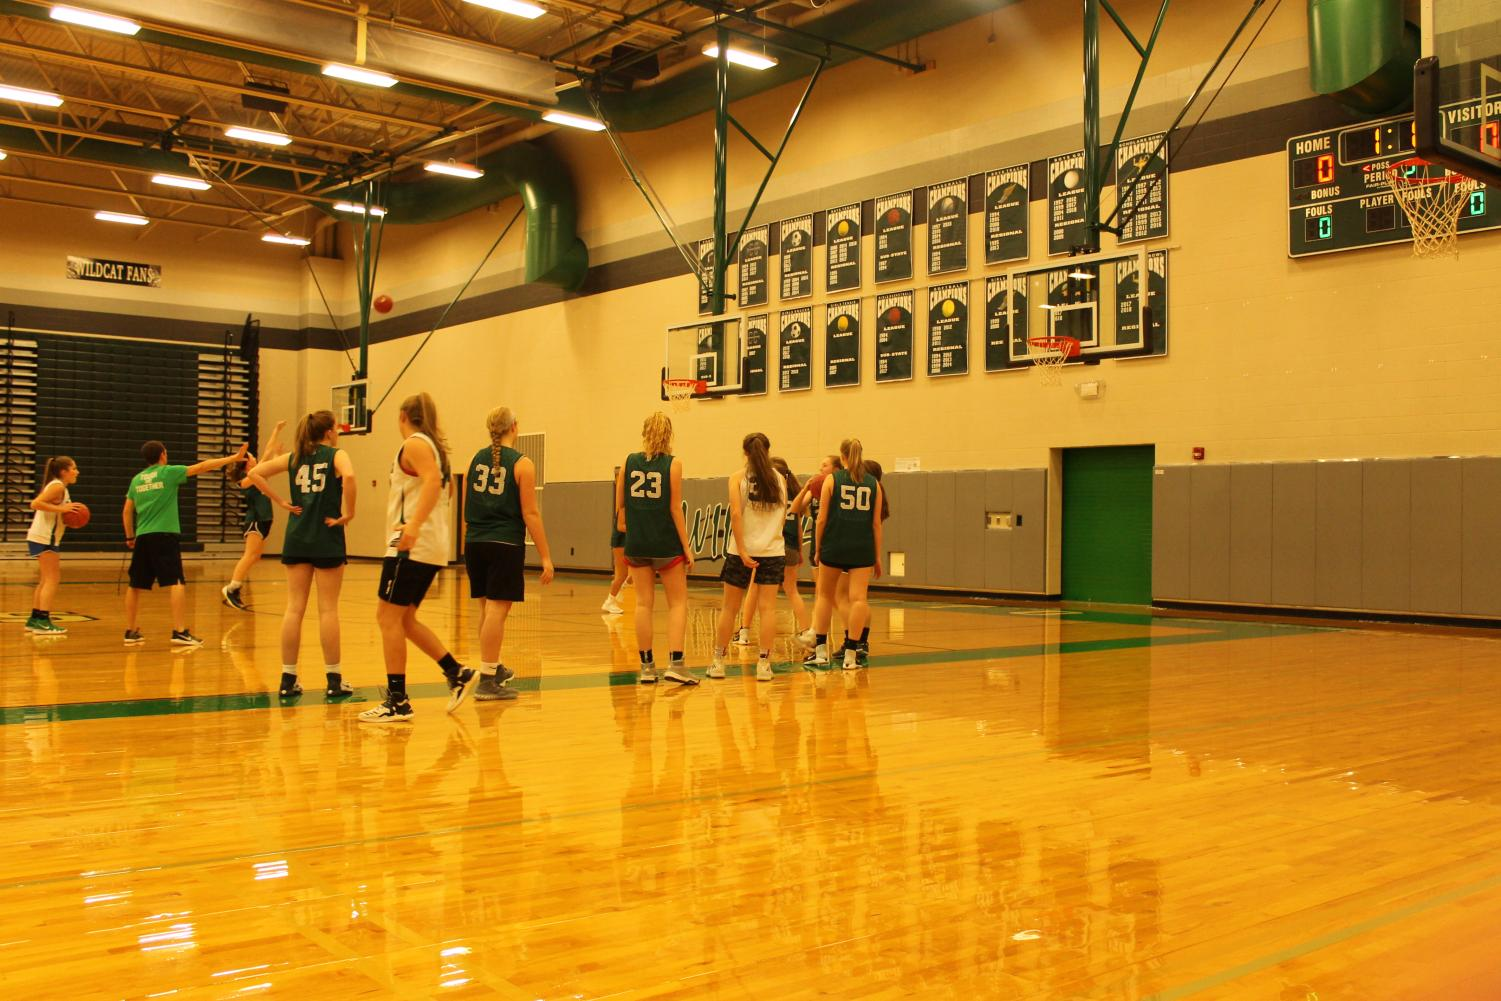 The girls basketball team practicing in the main gym on November 27th.